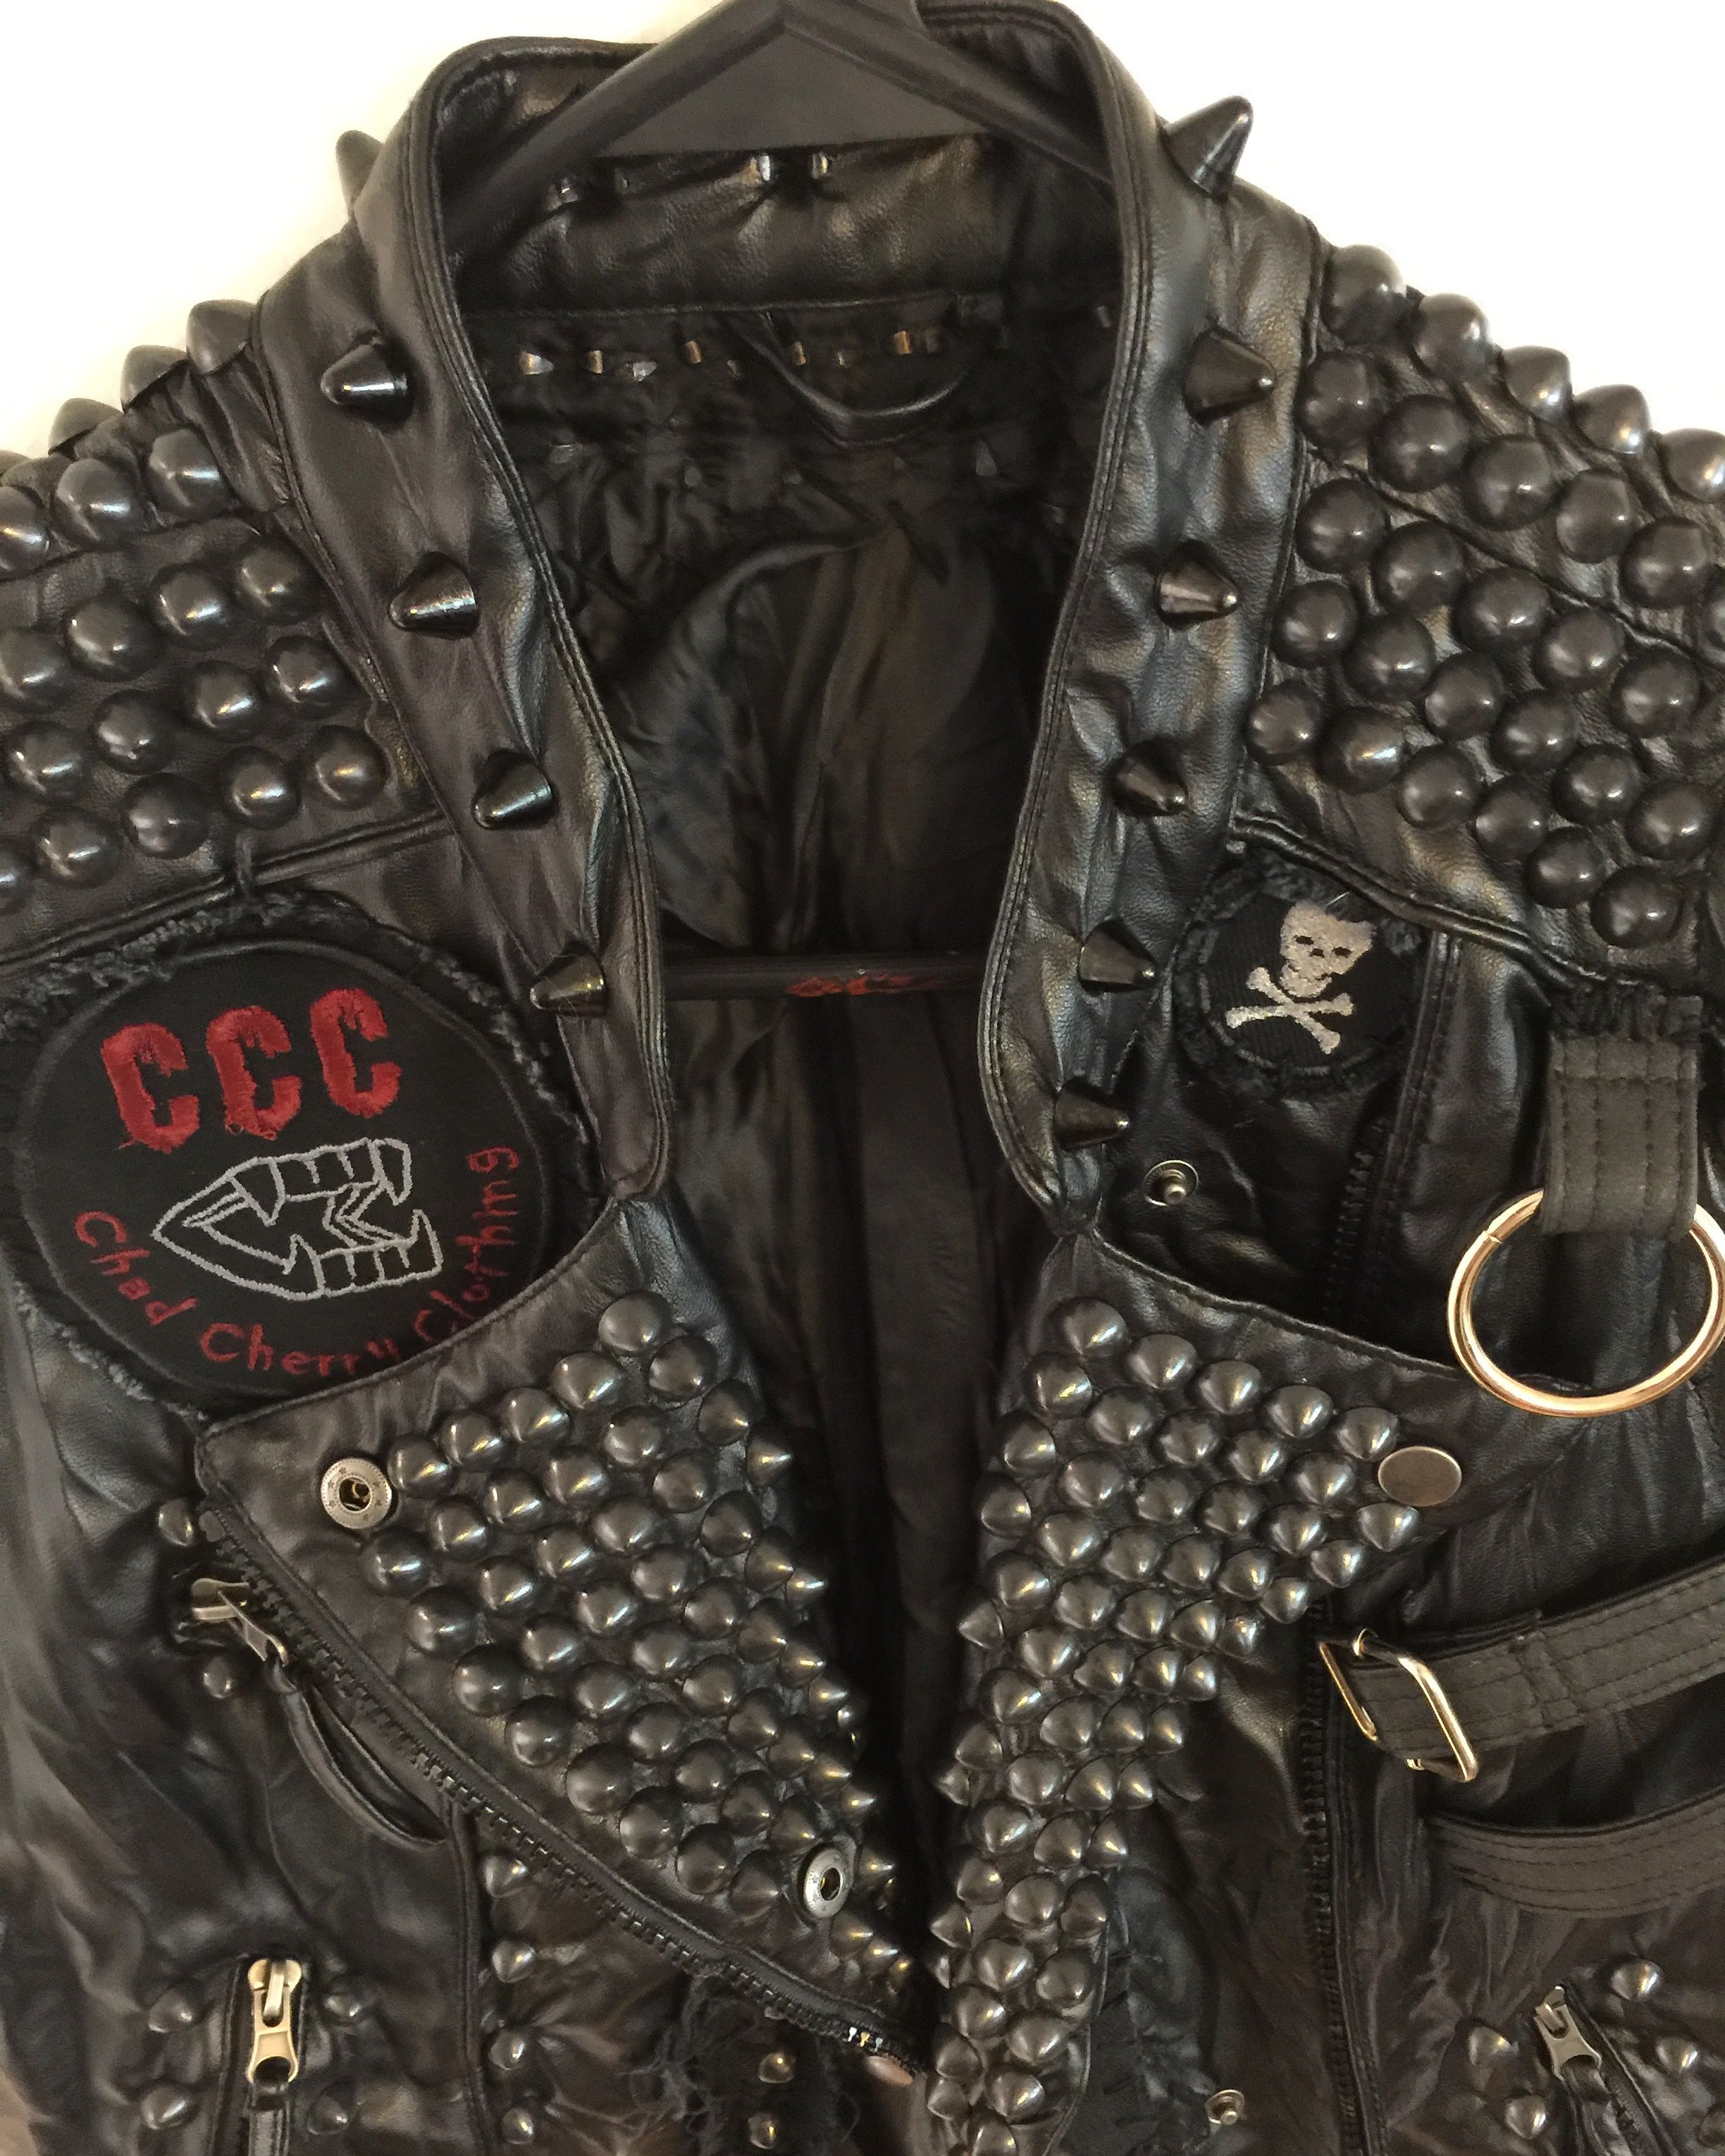 Studded vests from Chad Cherry Clothing.   Chad Cherry Punk Rock ... 5bb18ccb55